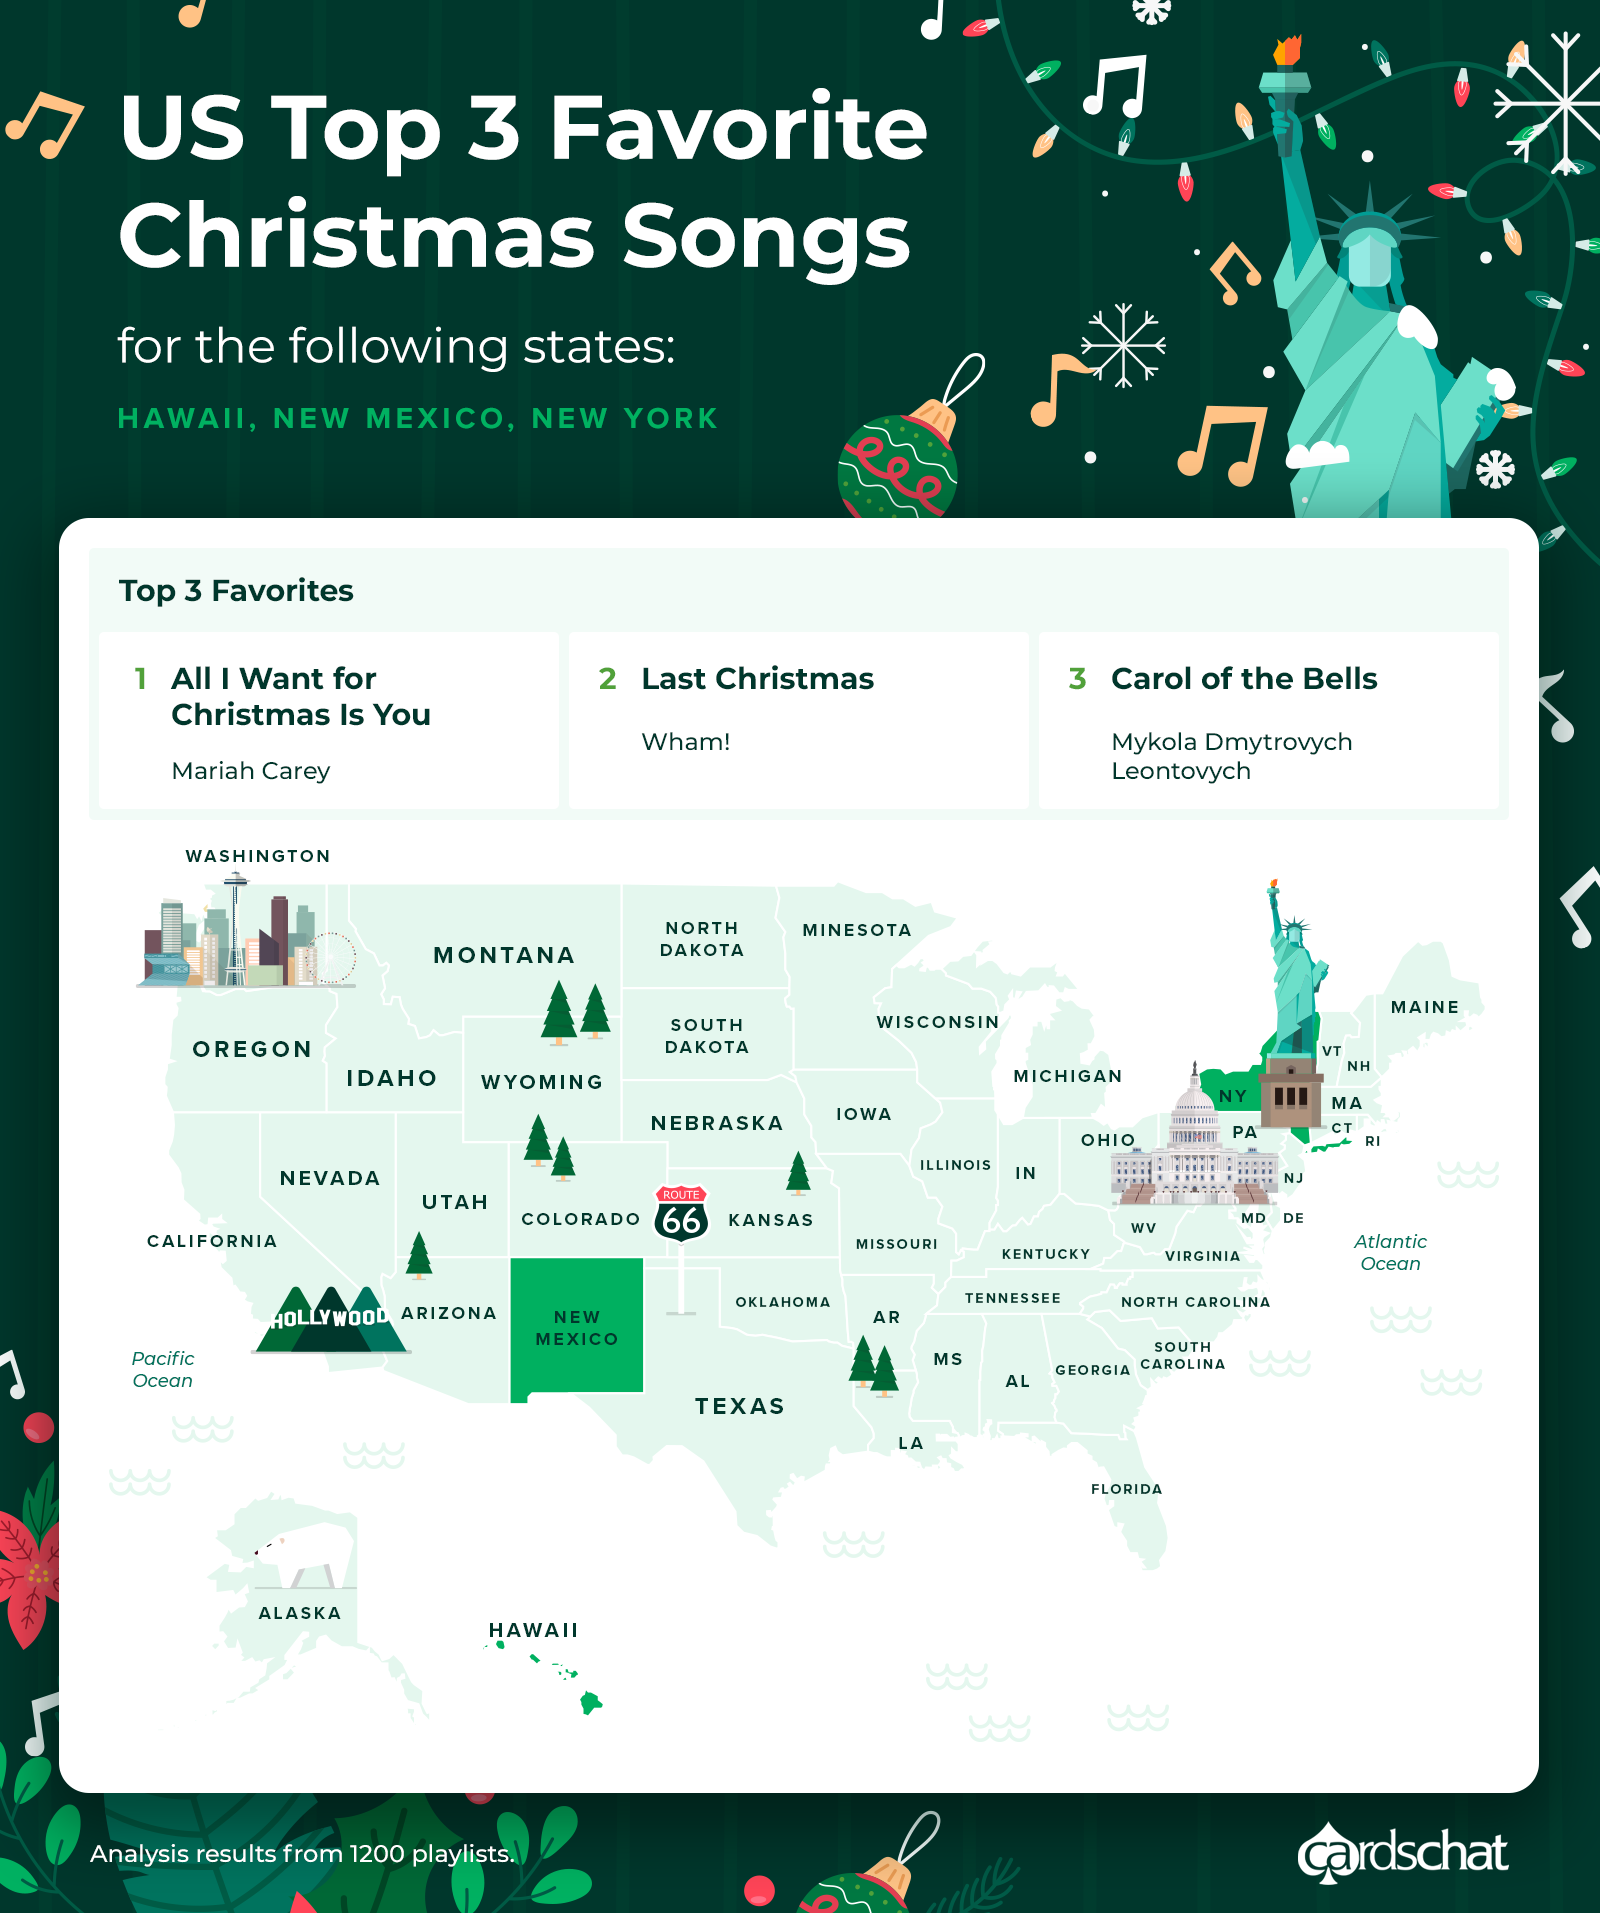 favorite christmas songs in the US